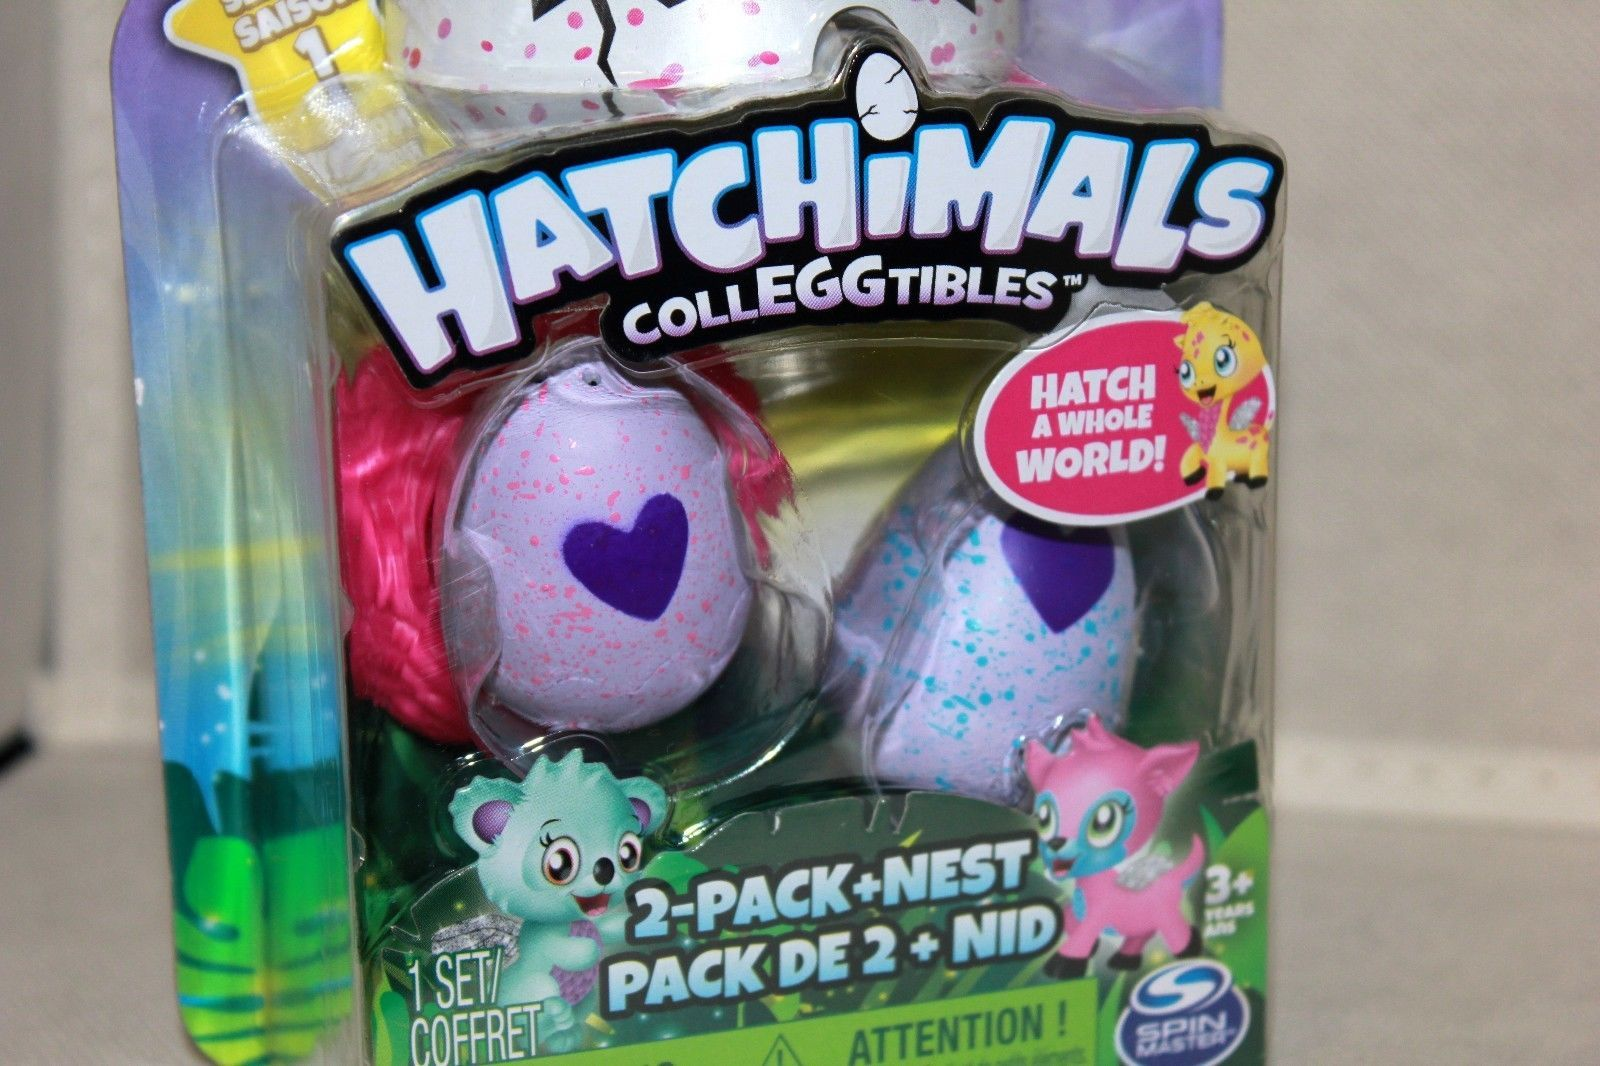 Hatchimals CollEGGtibles 2-Pack + Nest - Officially Licensed - New/Sealed